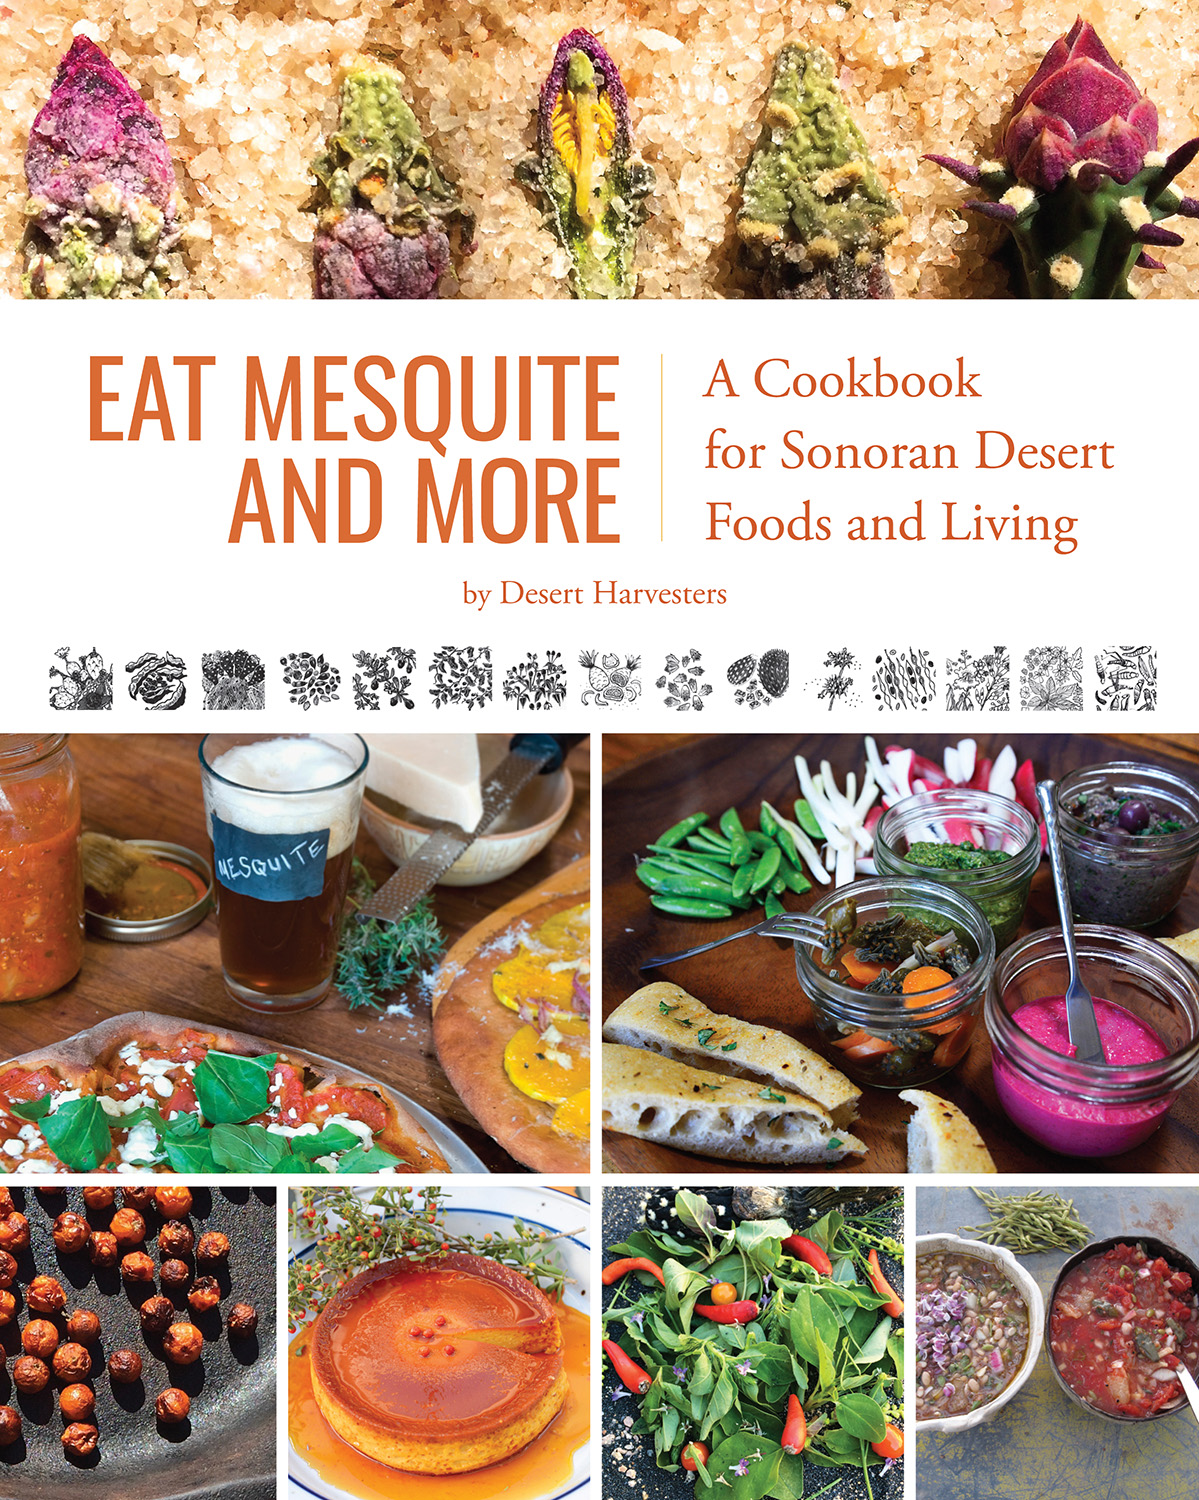 The Eat Mesquite and More cover